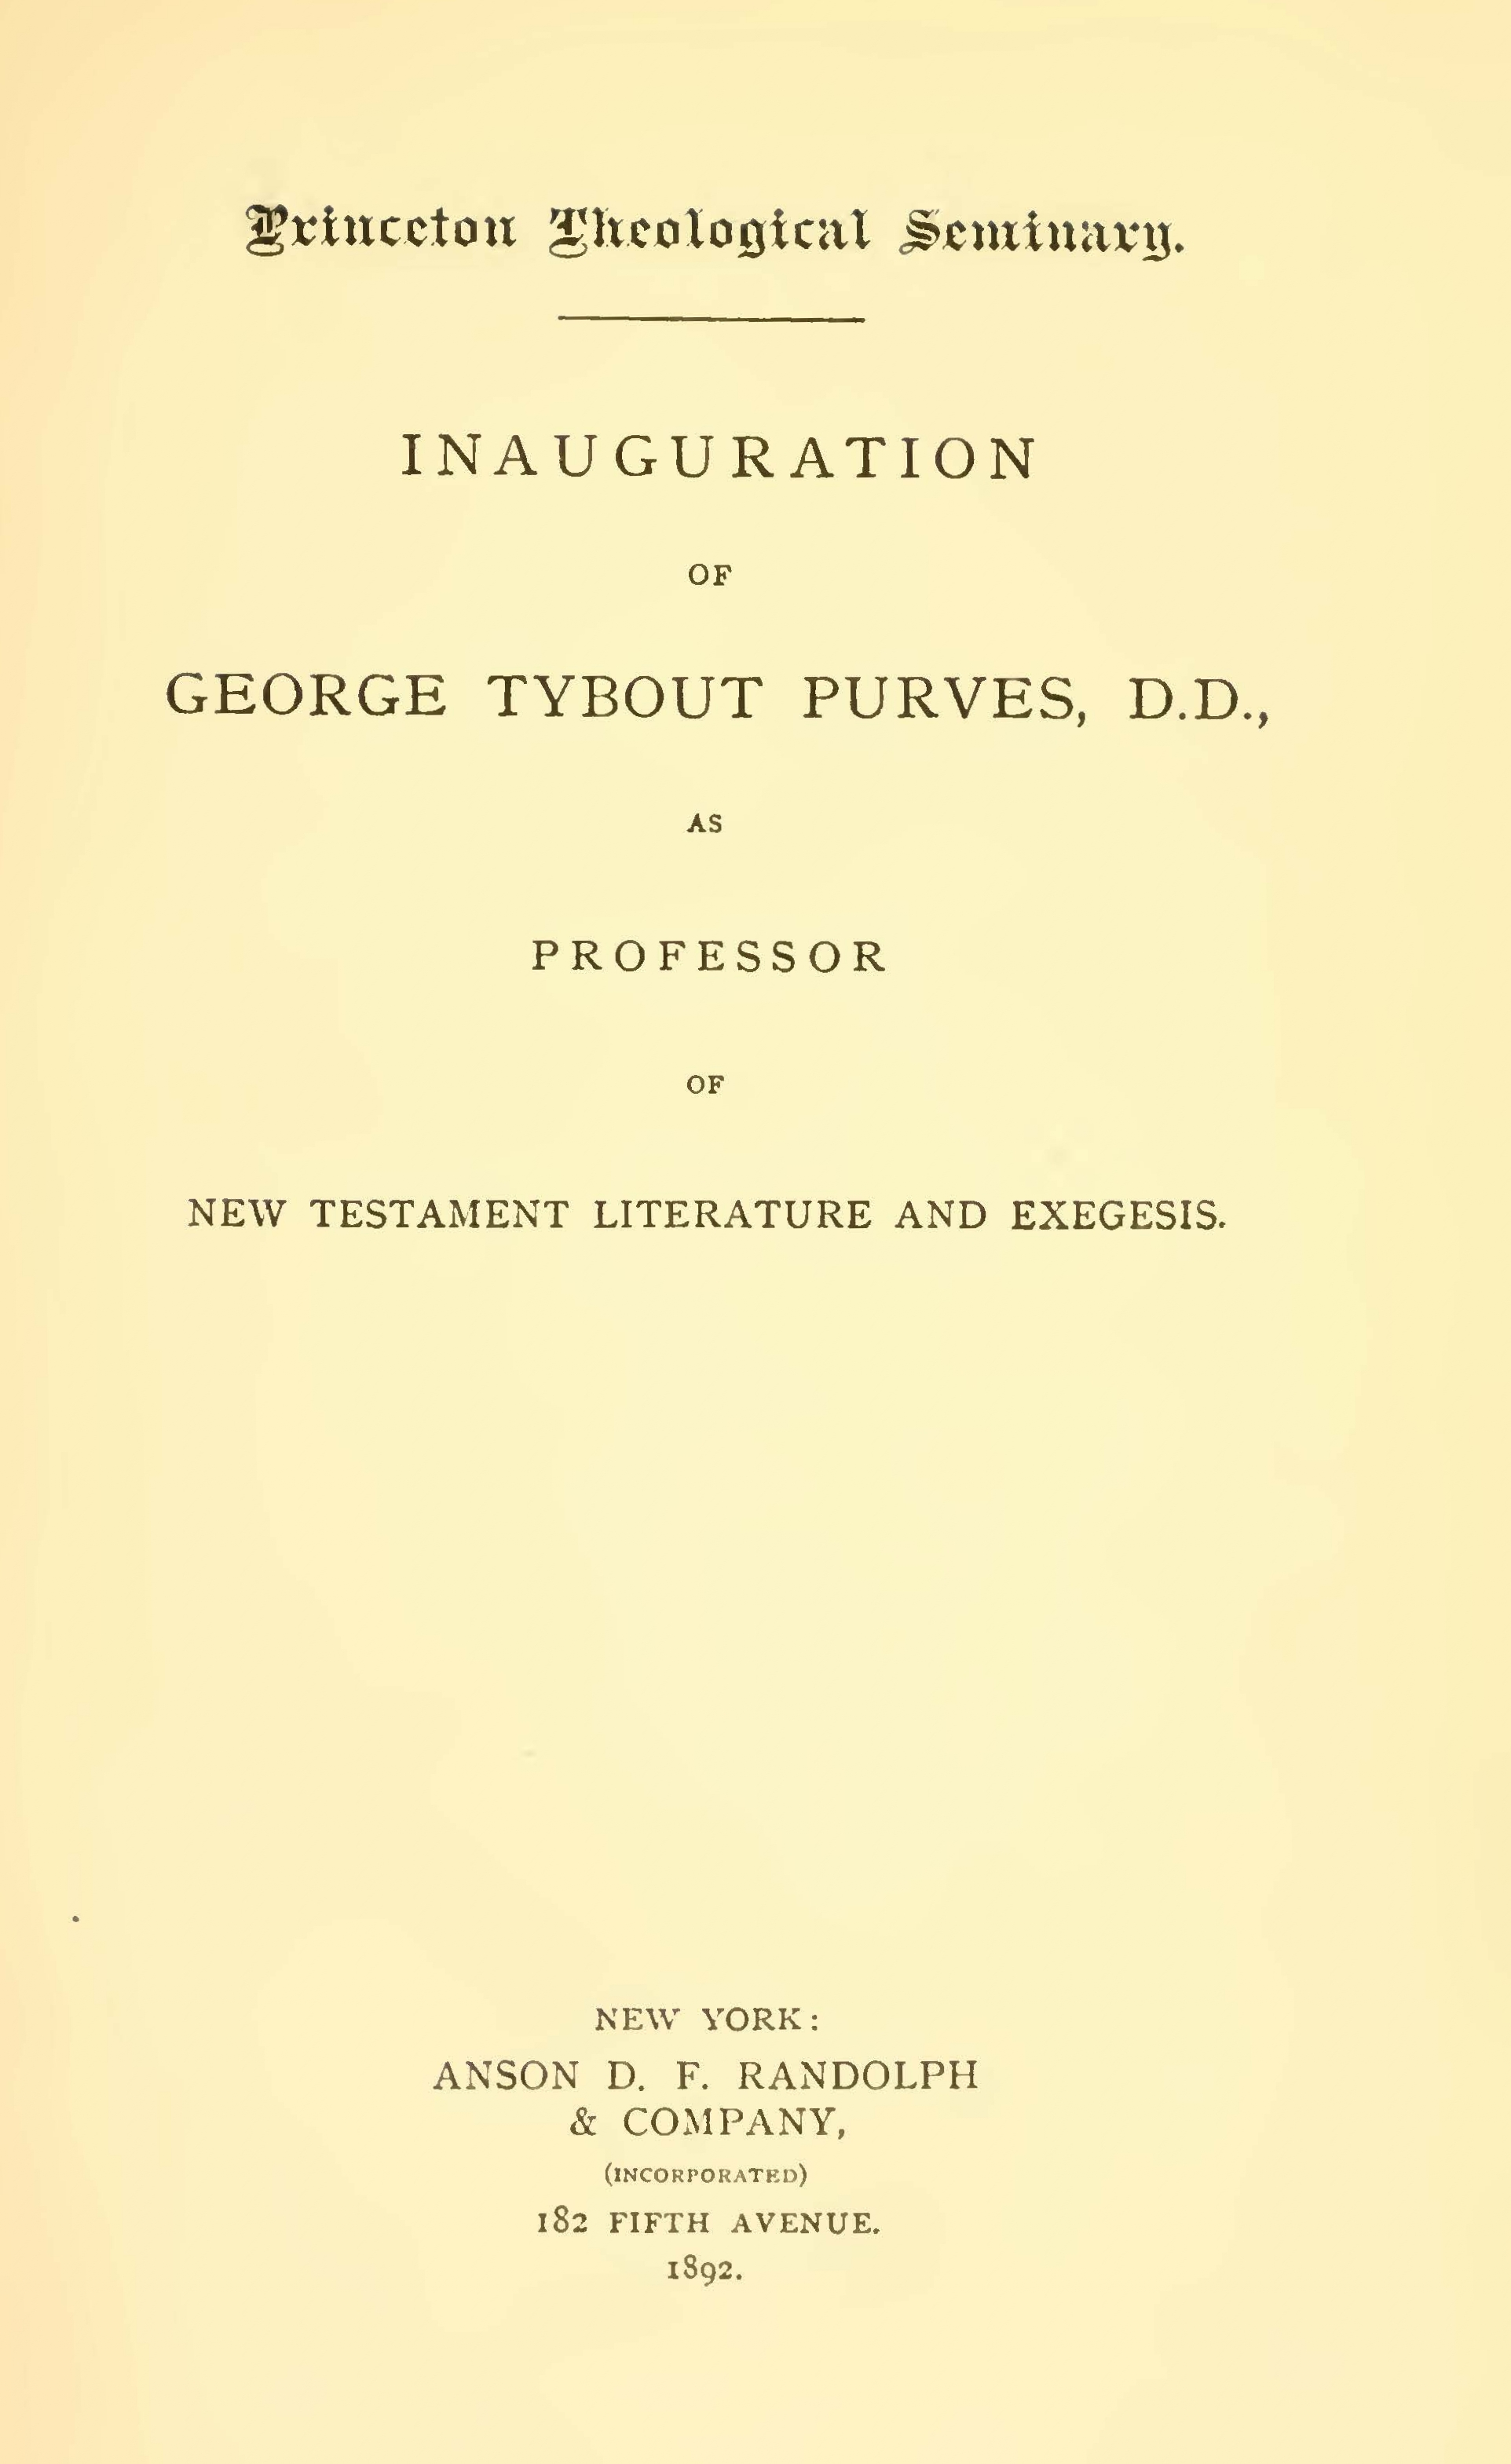 Purves, George Tybout, Inauguration of George Tybout Purves, D.D. Title Page.jpg